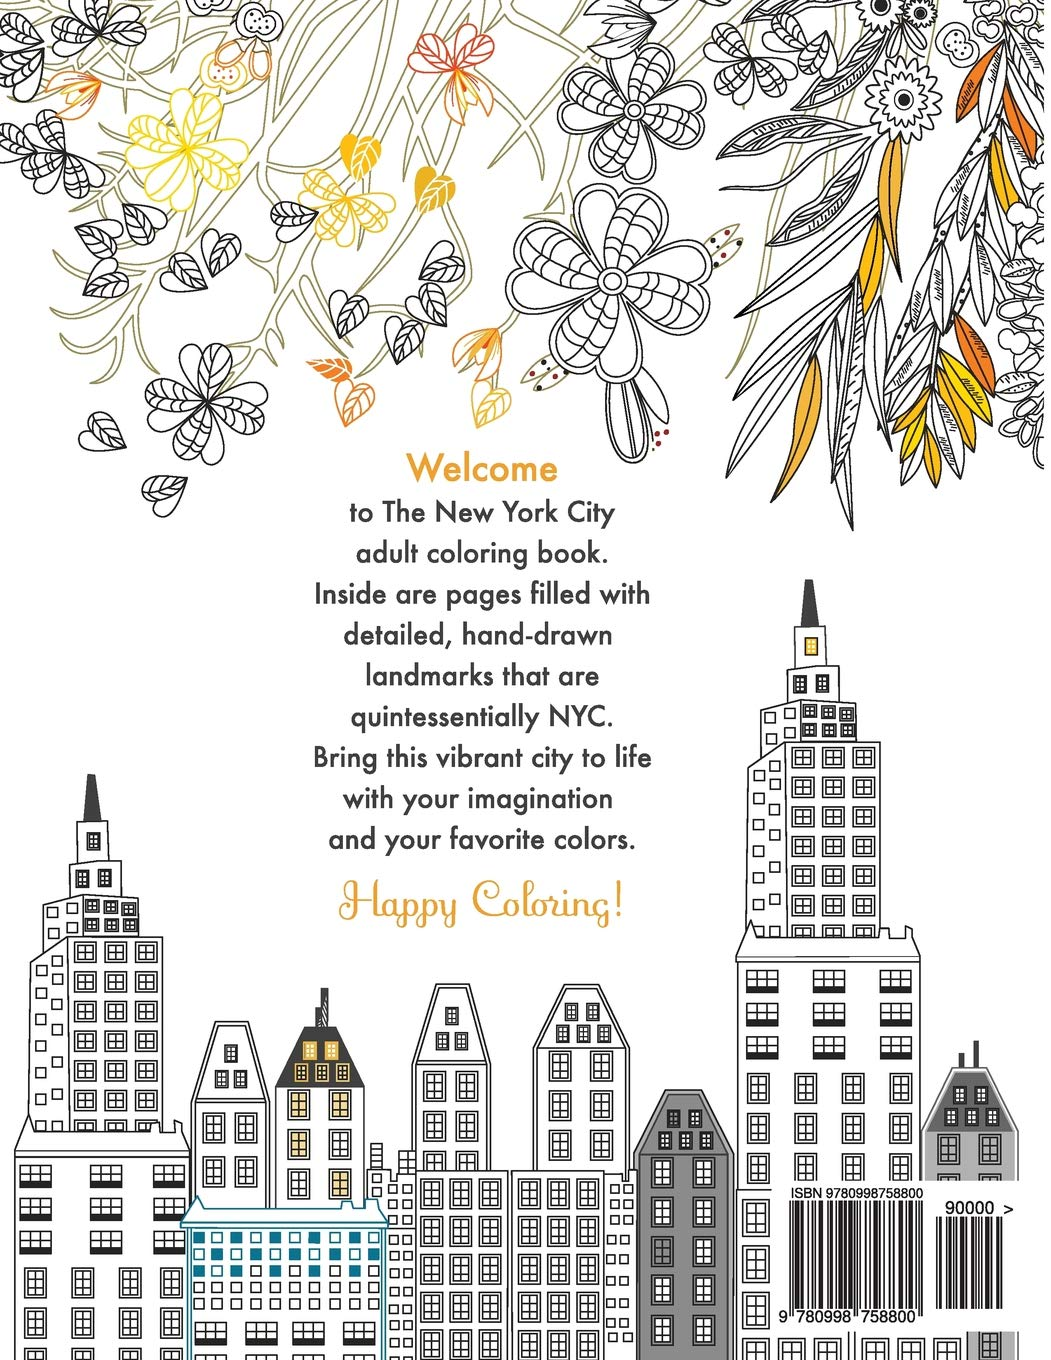 New York City Adult Coloring Book Tevi Woehl 9780998758800 Amazon Books